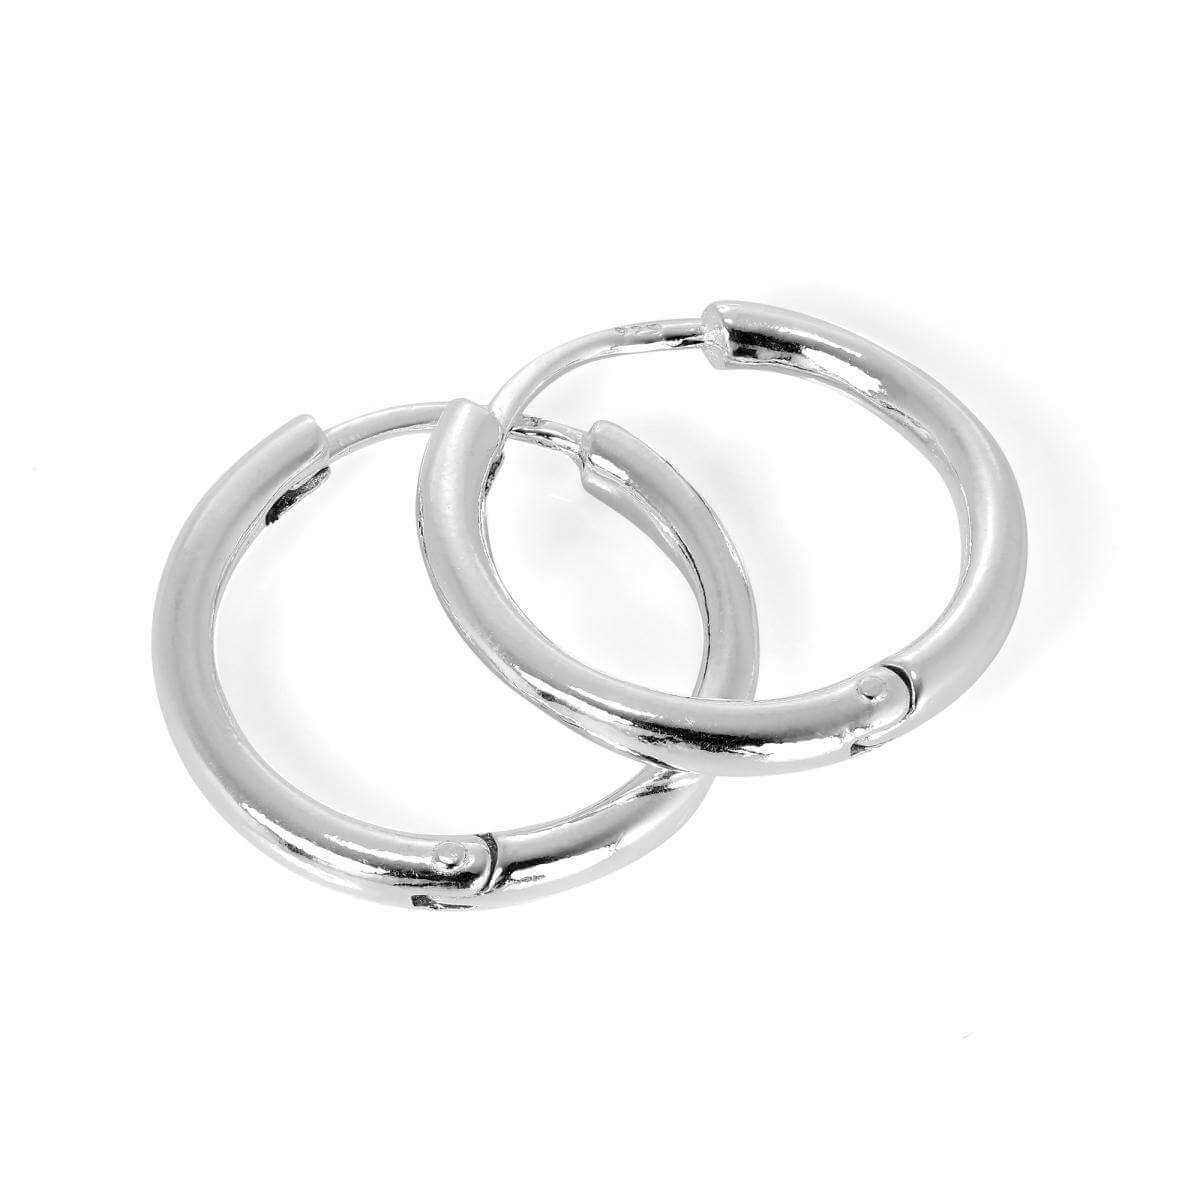 Sterling Silver Heavy Hinged Sleeper 19mm Hoop Earrings